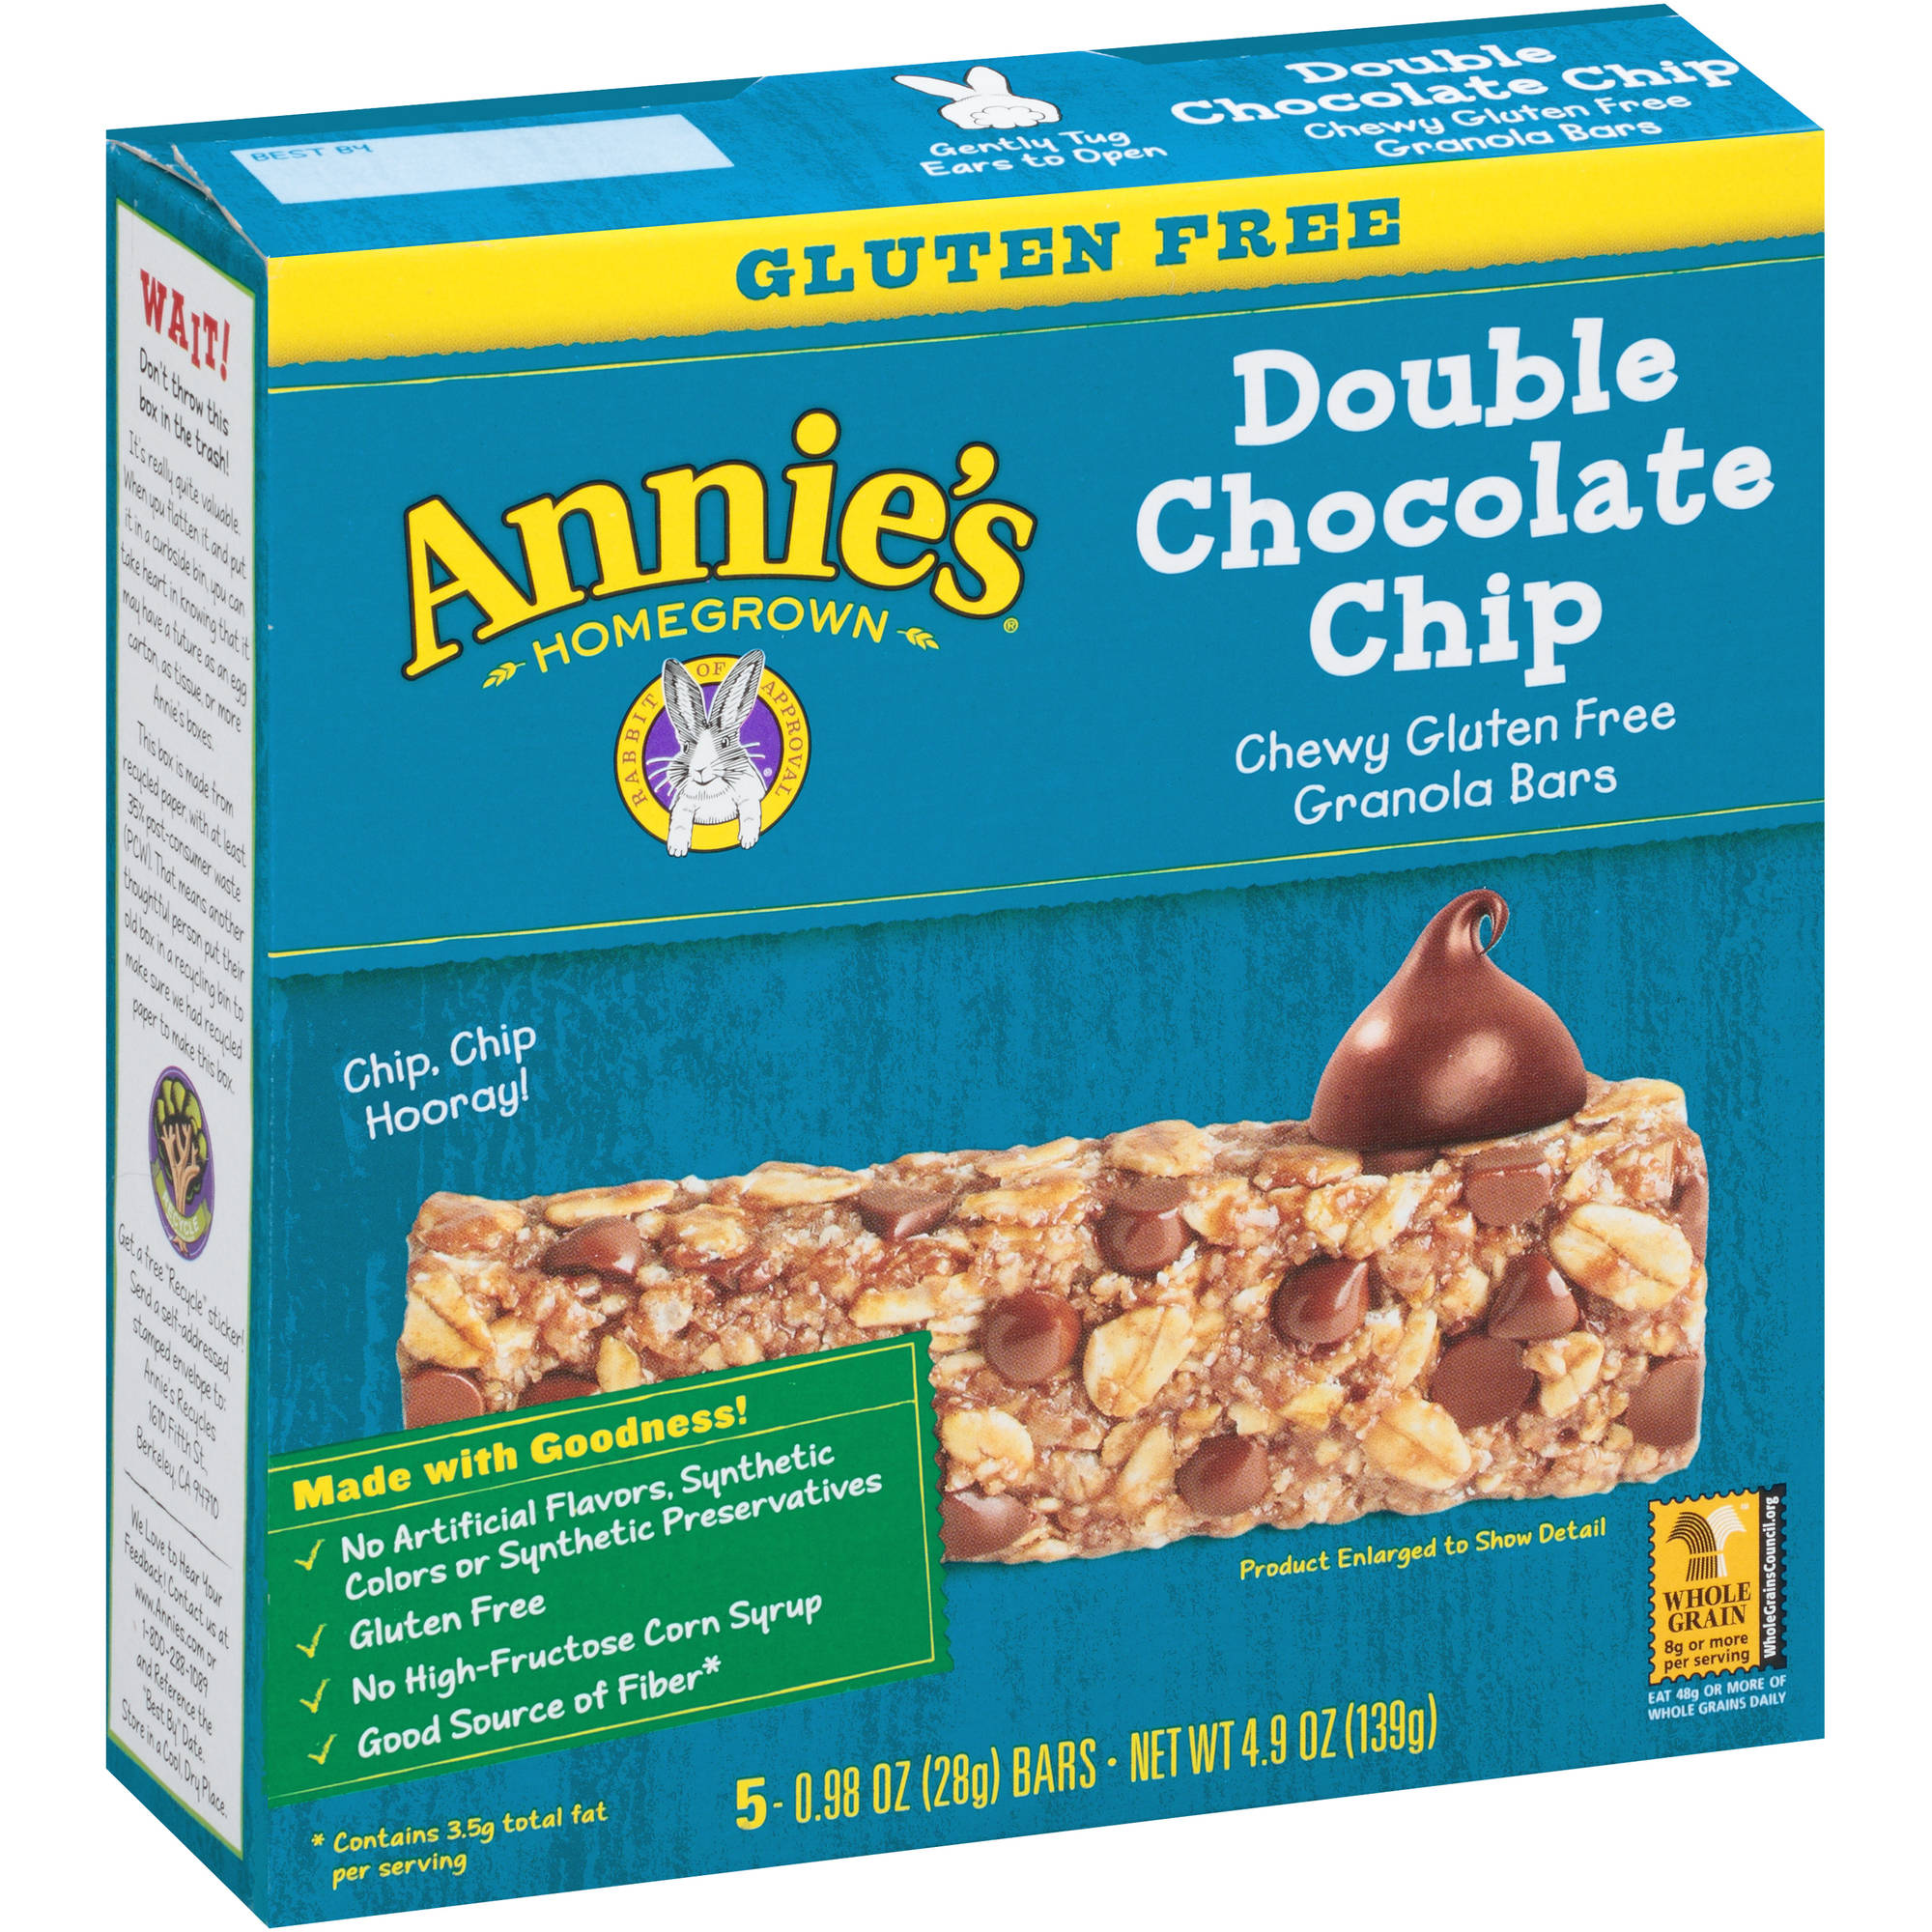 Annie's Gluten Free Double Chocolate Chip Granola Bars 5 Count 4.9 oz.